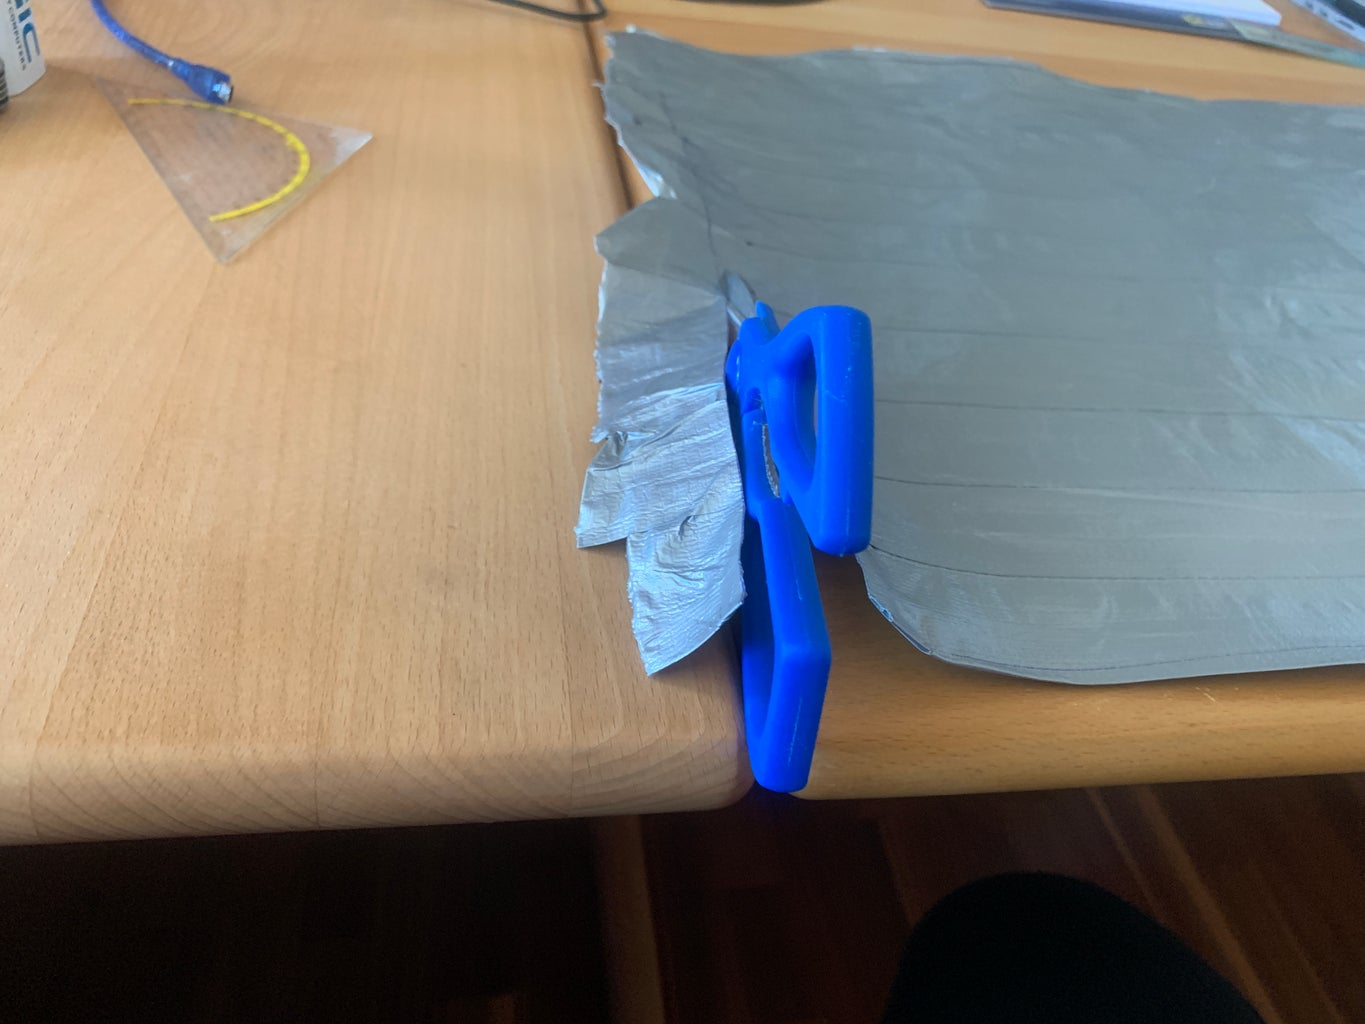 Cut the Tapefoil to the Calculated Proportions